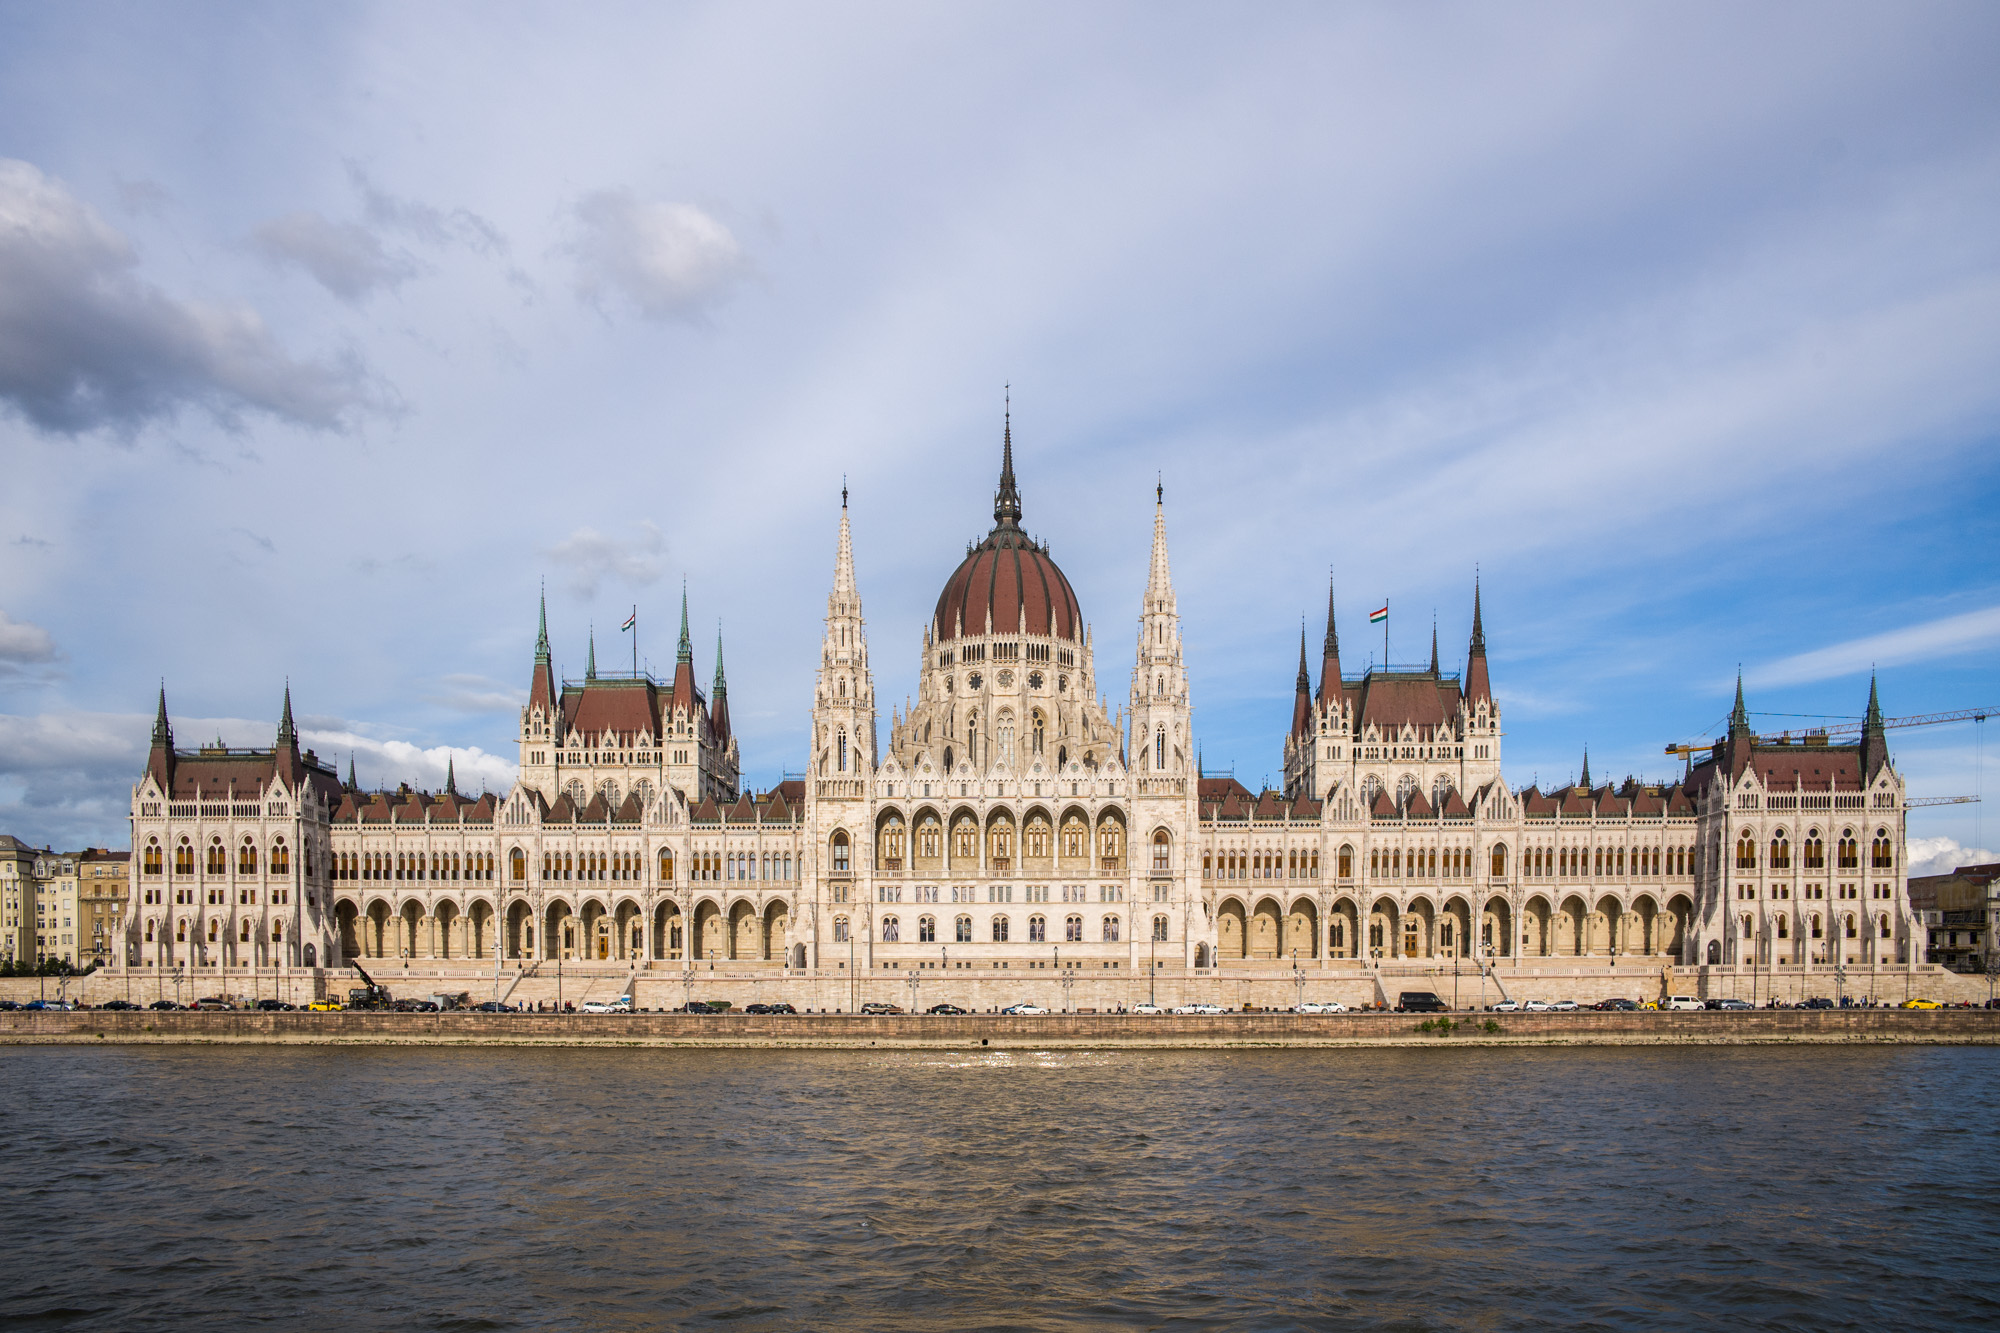 Parliament building seen from the Danube